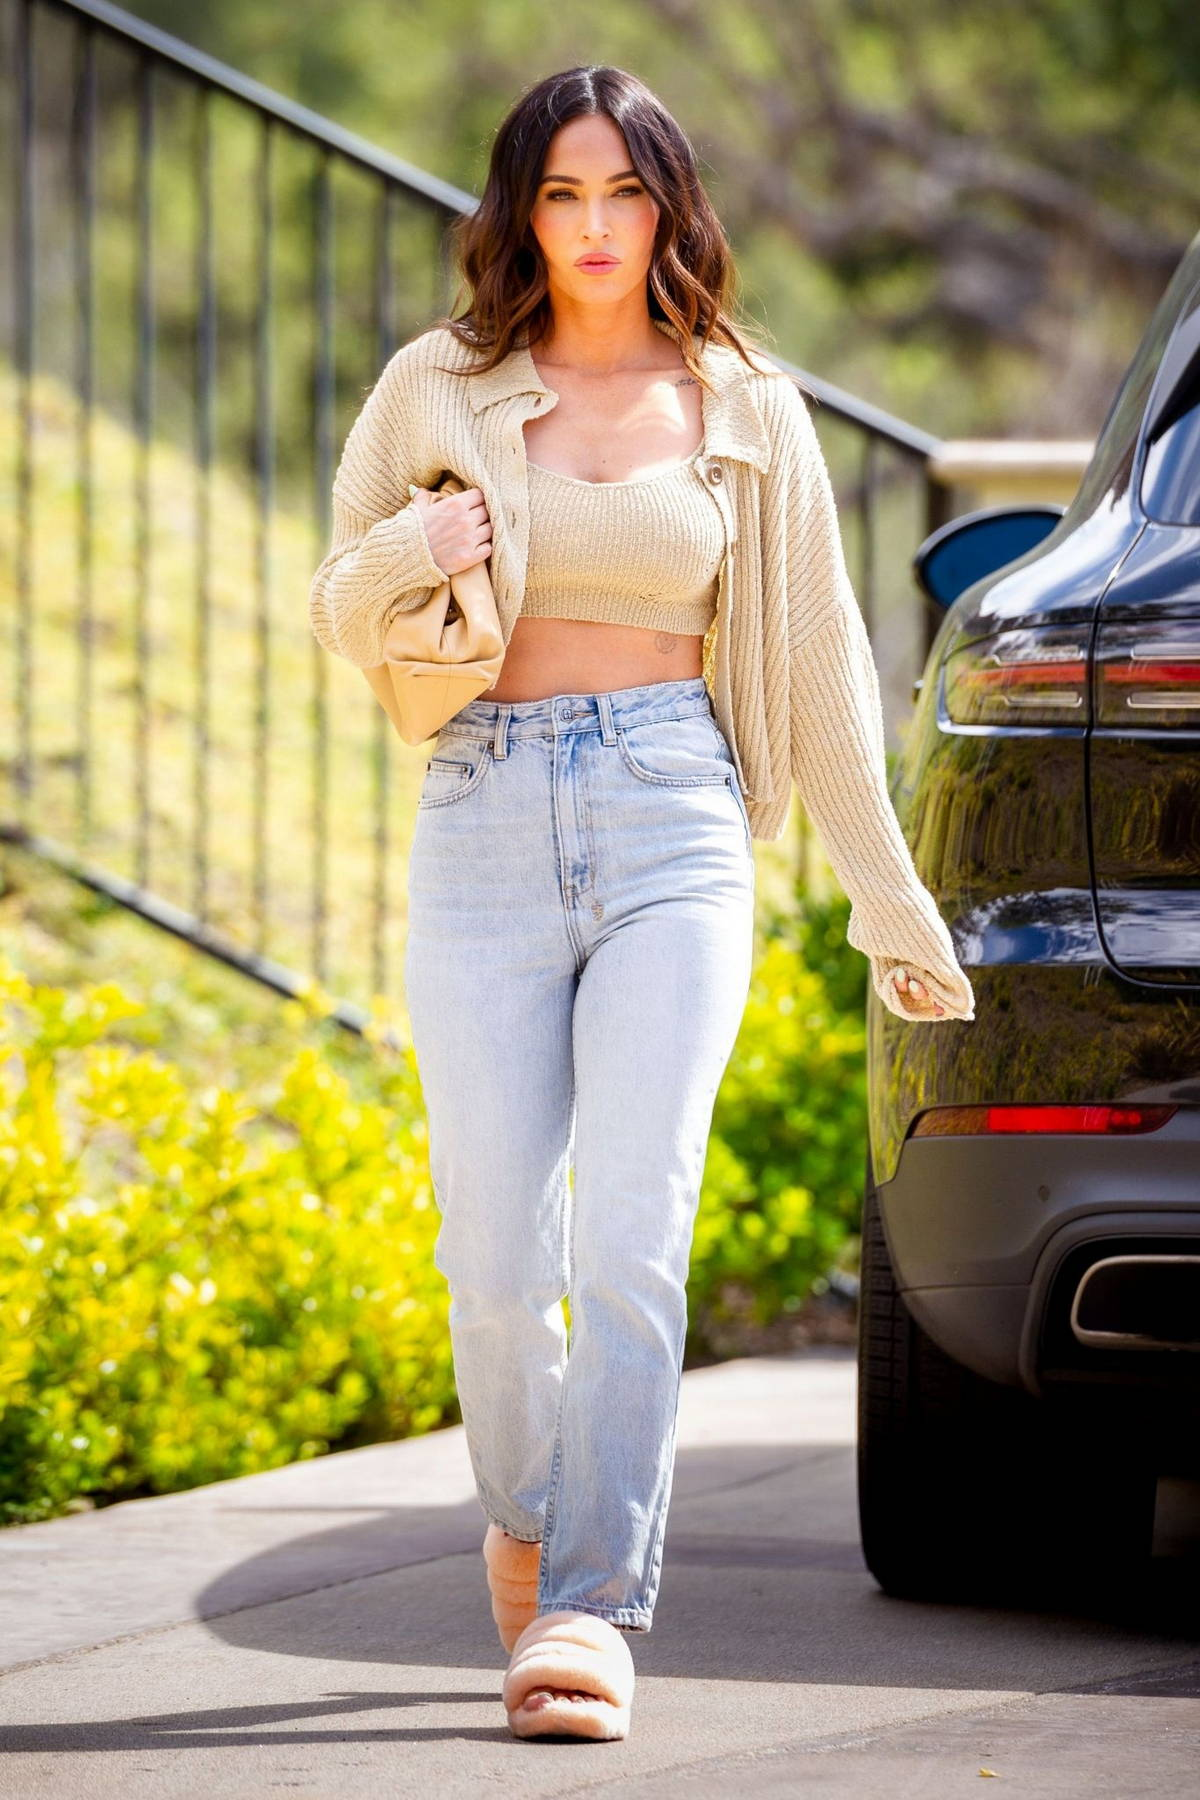 Megan Fox looks fab in a crop top with matching cardigan as she steps out in Los Angeles